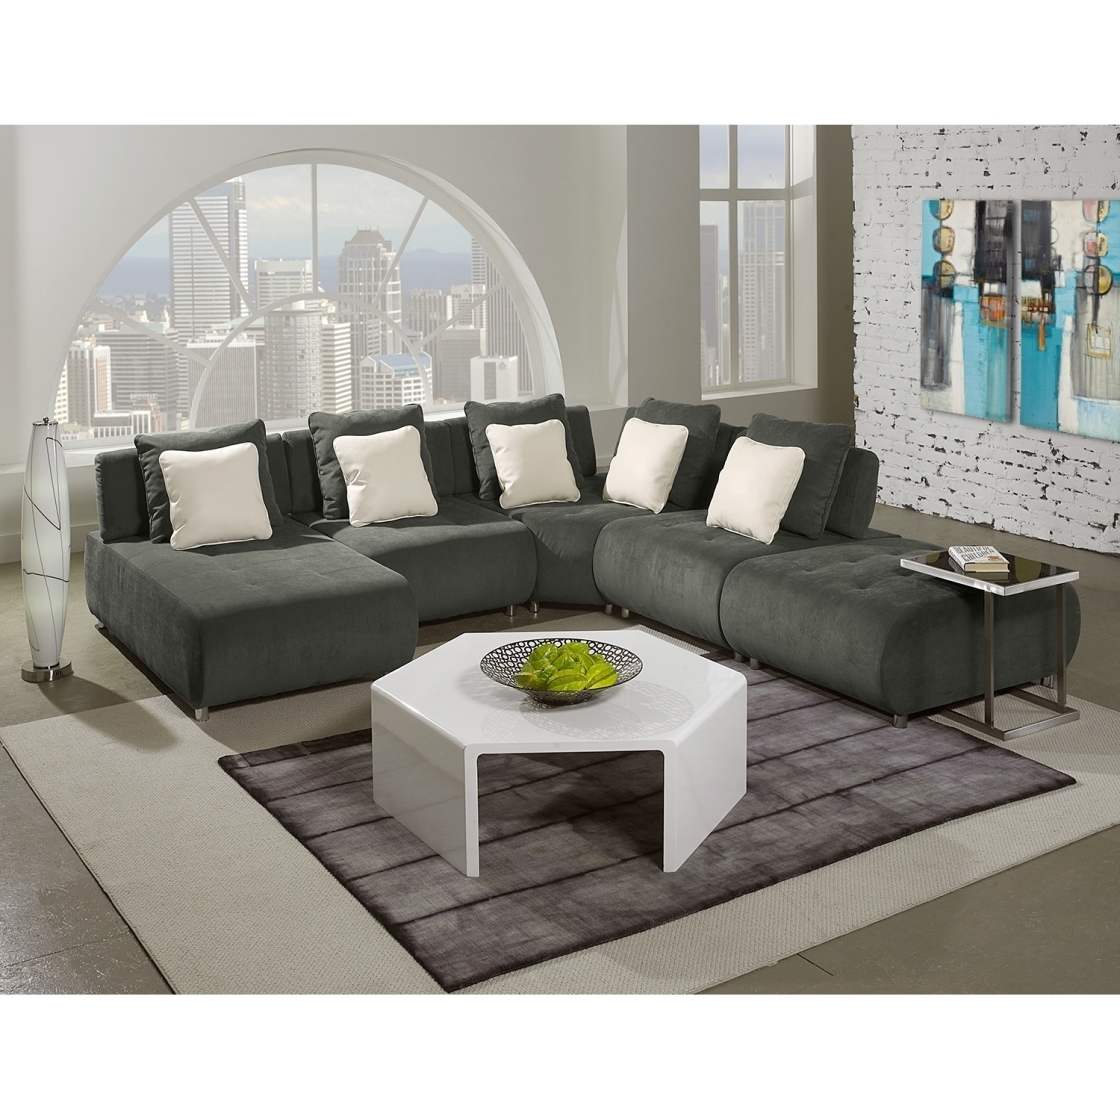 Beautiful Sleek Sectional Sofas 66 In Sectional Sofa For Small Space throughout Sleek Sectional Sofas (Image 3 of 10)